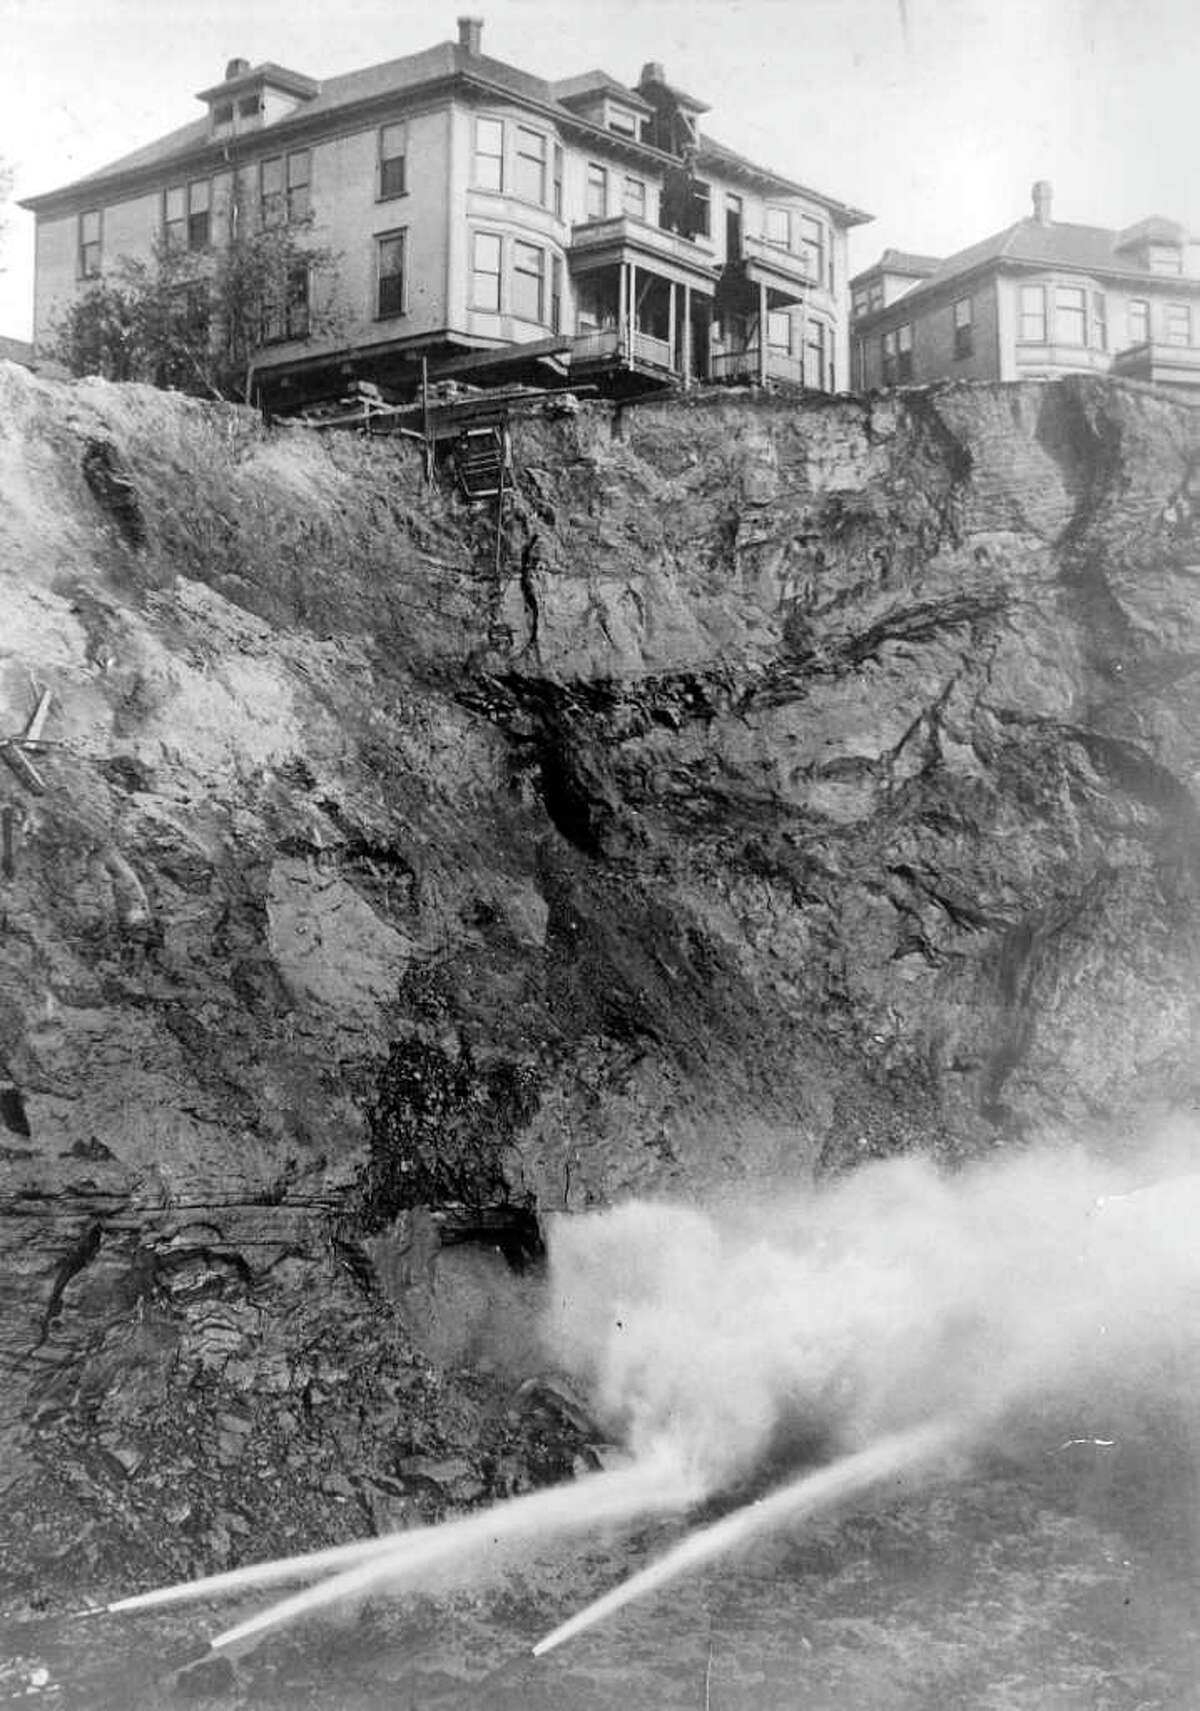 Water jets slice away part of old Denny Hill at the foot of Blanchard Street in 1908. Until it was flattened by city engineers, Denny Hill was a steep and inconvenient bump just north of downtown Seattle. When a homeowner wouldn't sell their property to the city, developers dug out the hill around them.